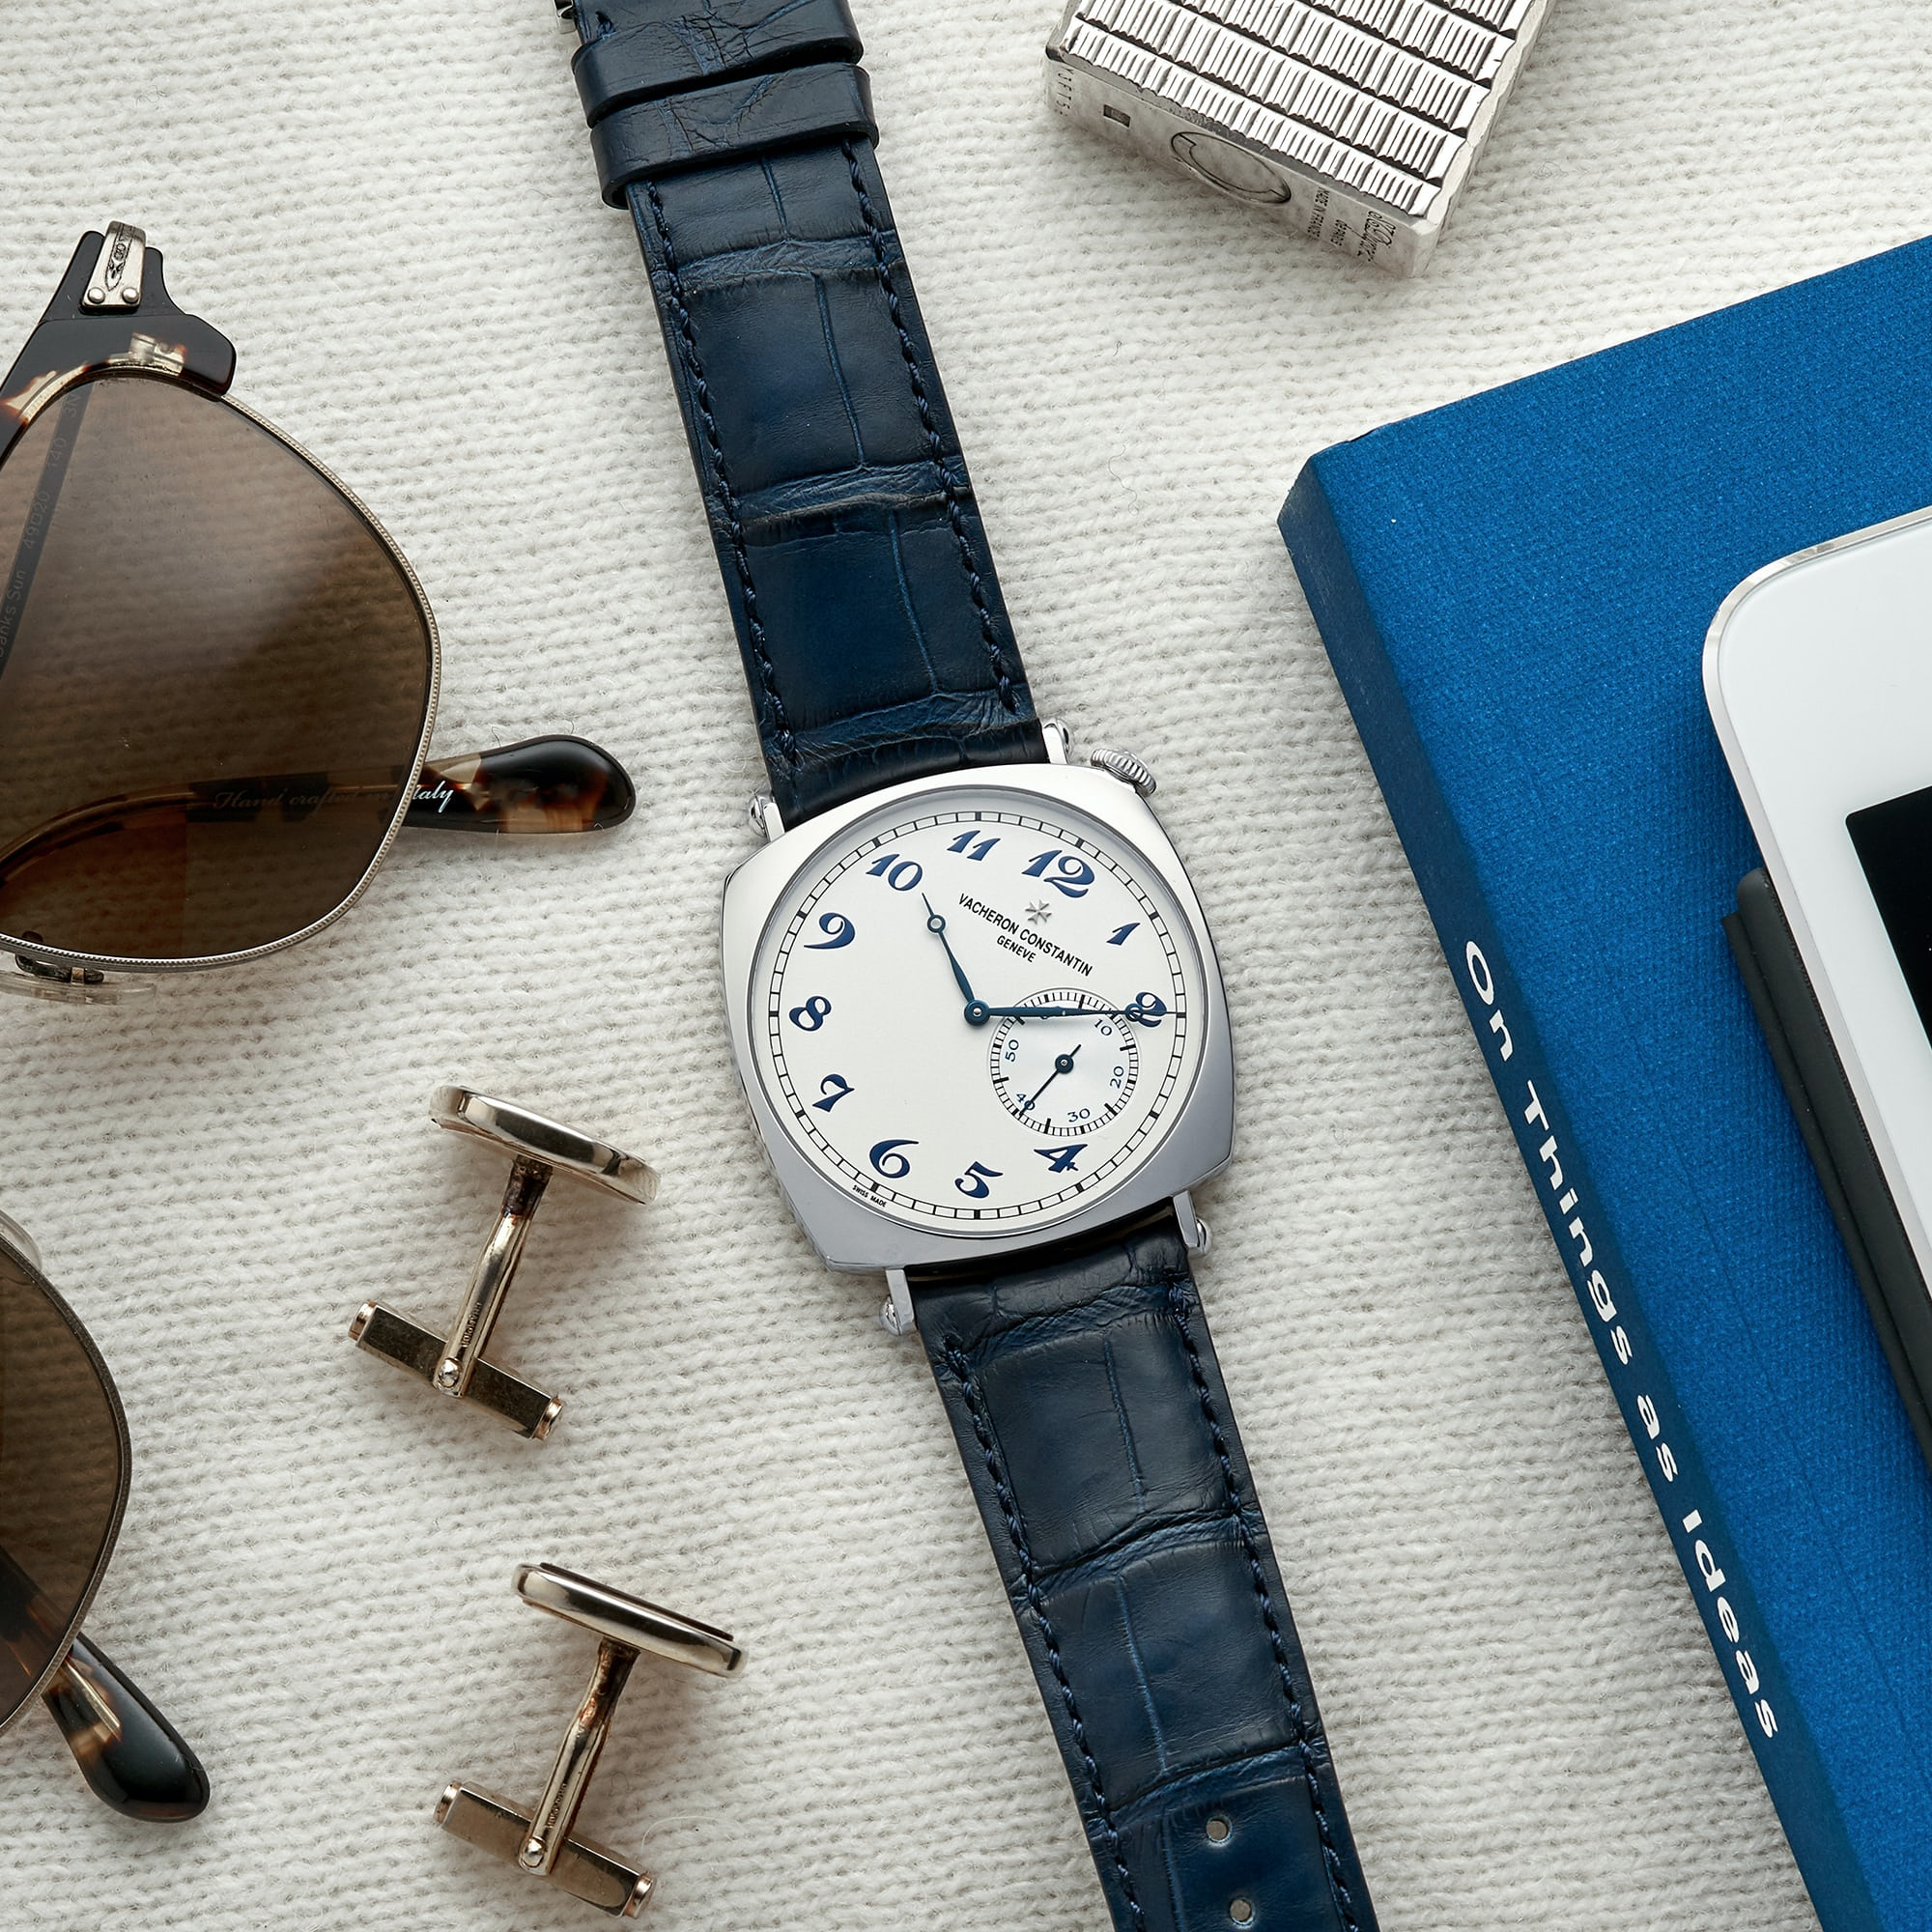 In The Shop – Our Favorite Watches And Accessories For The Fourth Of July VC7 Lifestyle Main